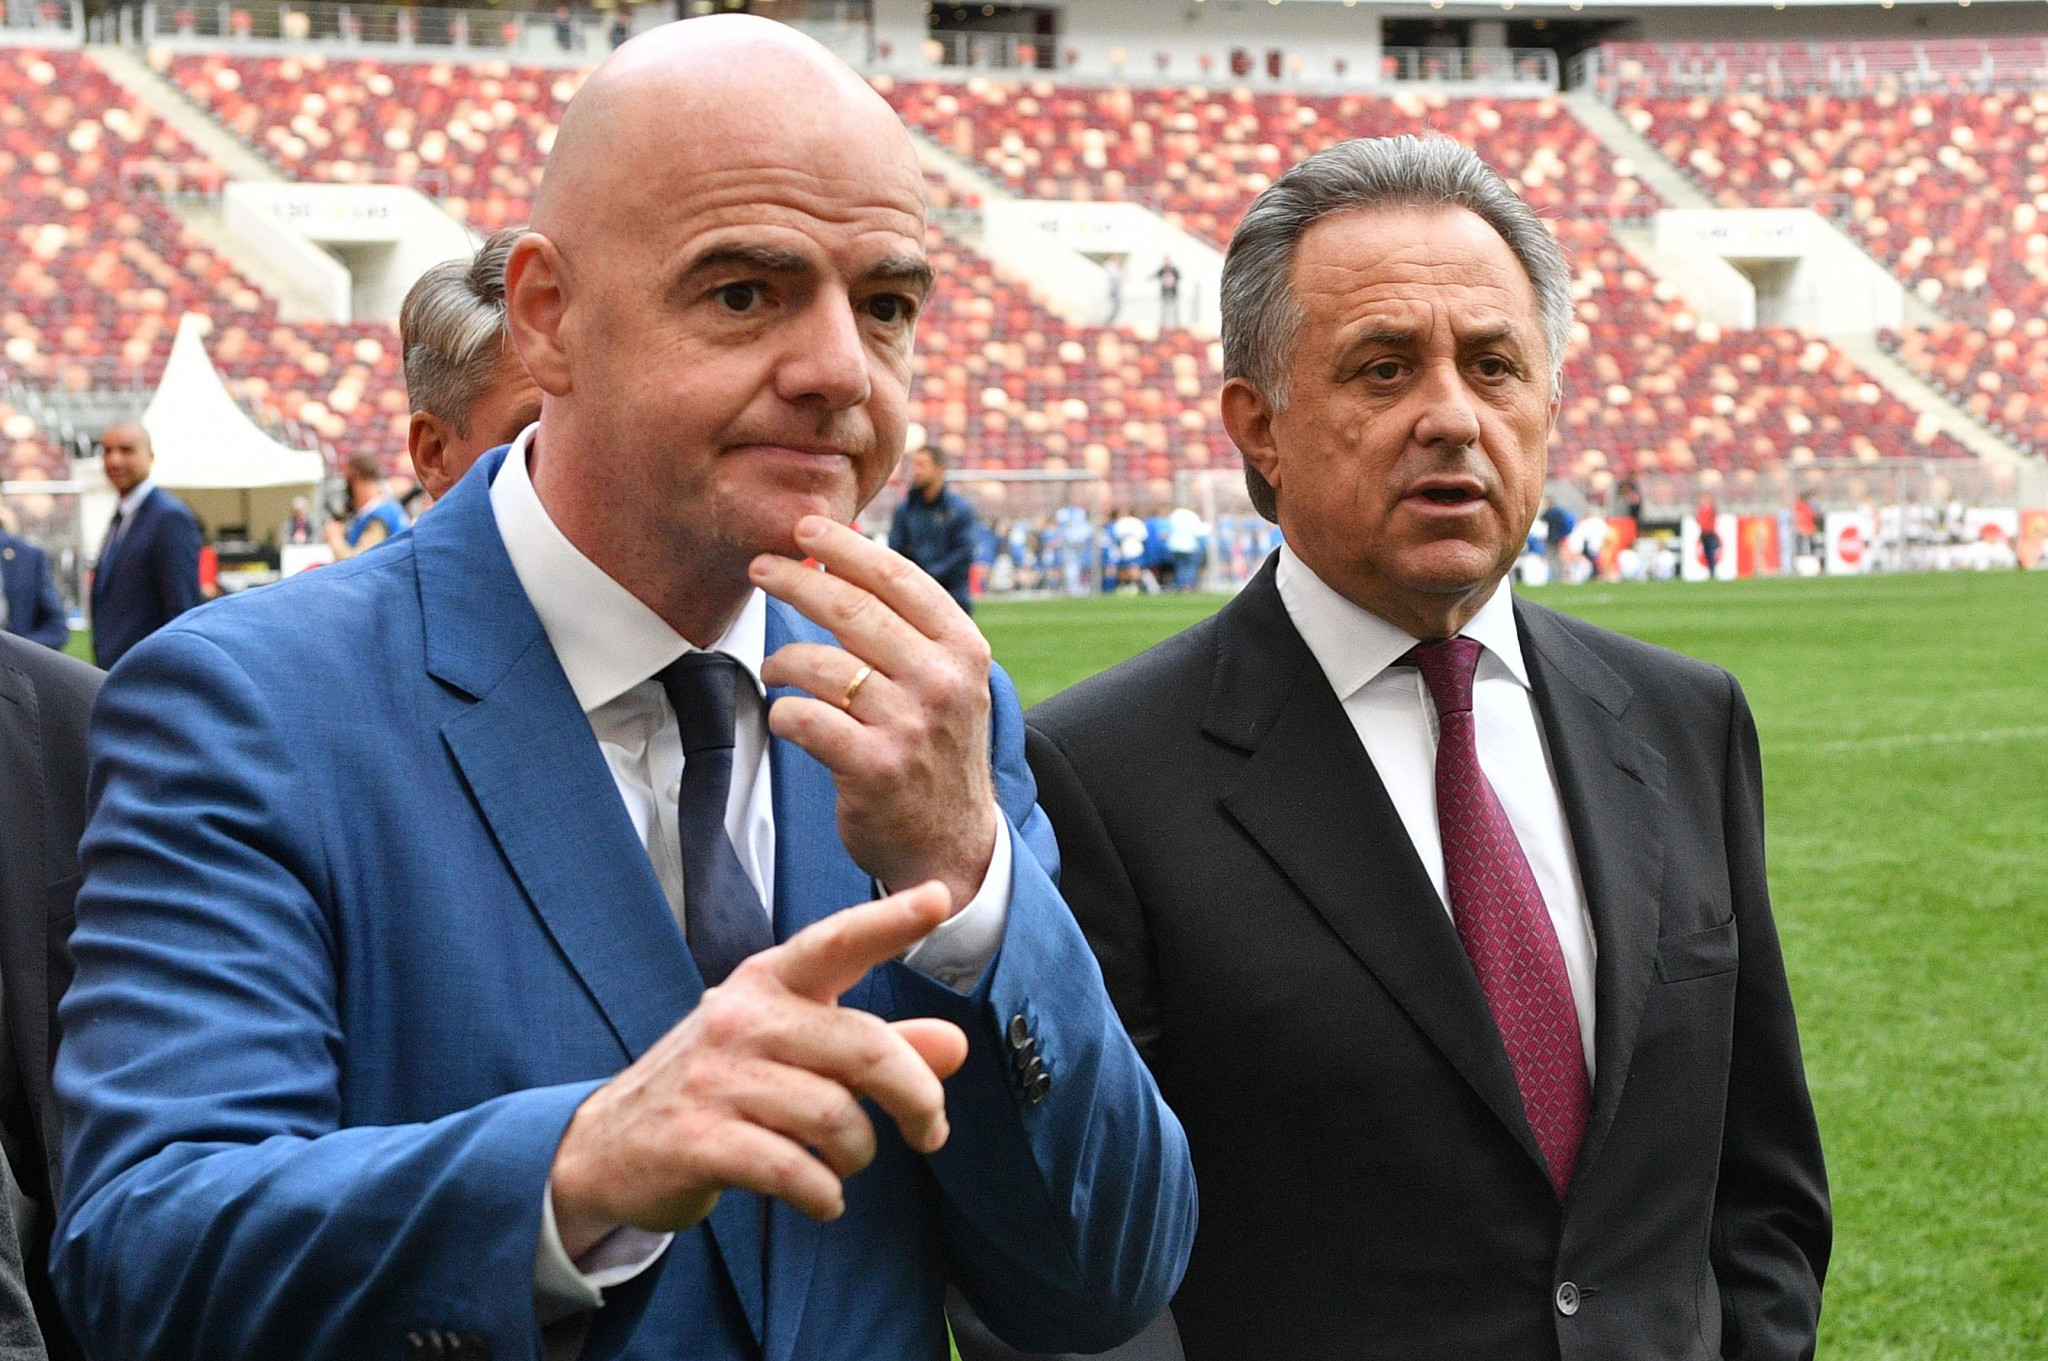 Mutko return as President of  Russian Football Union confirmed after attendance at meeting to endorse Infantino re-election